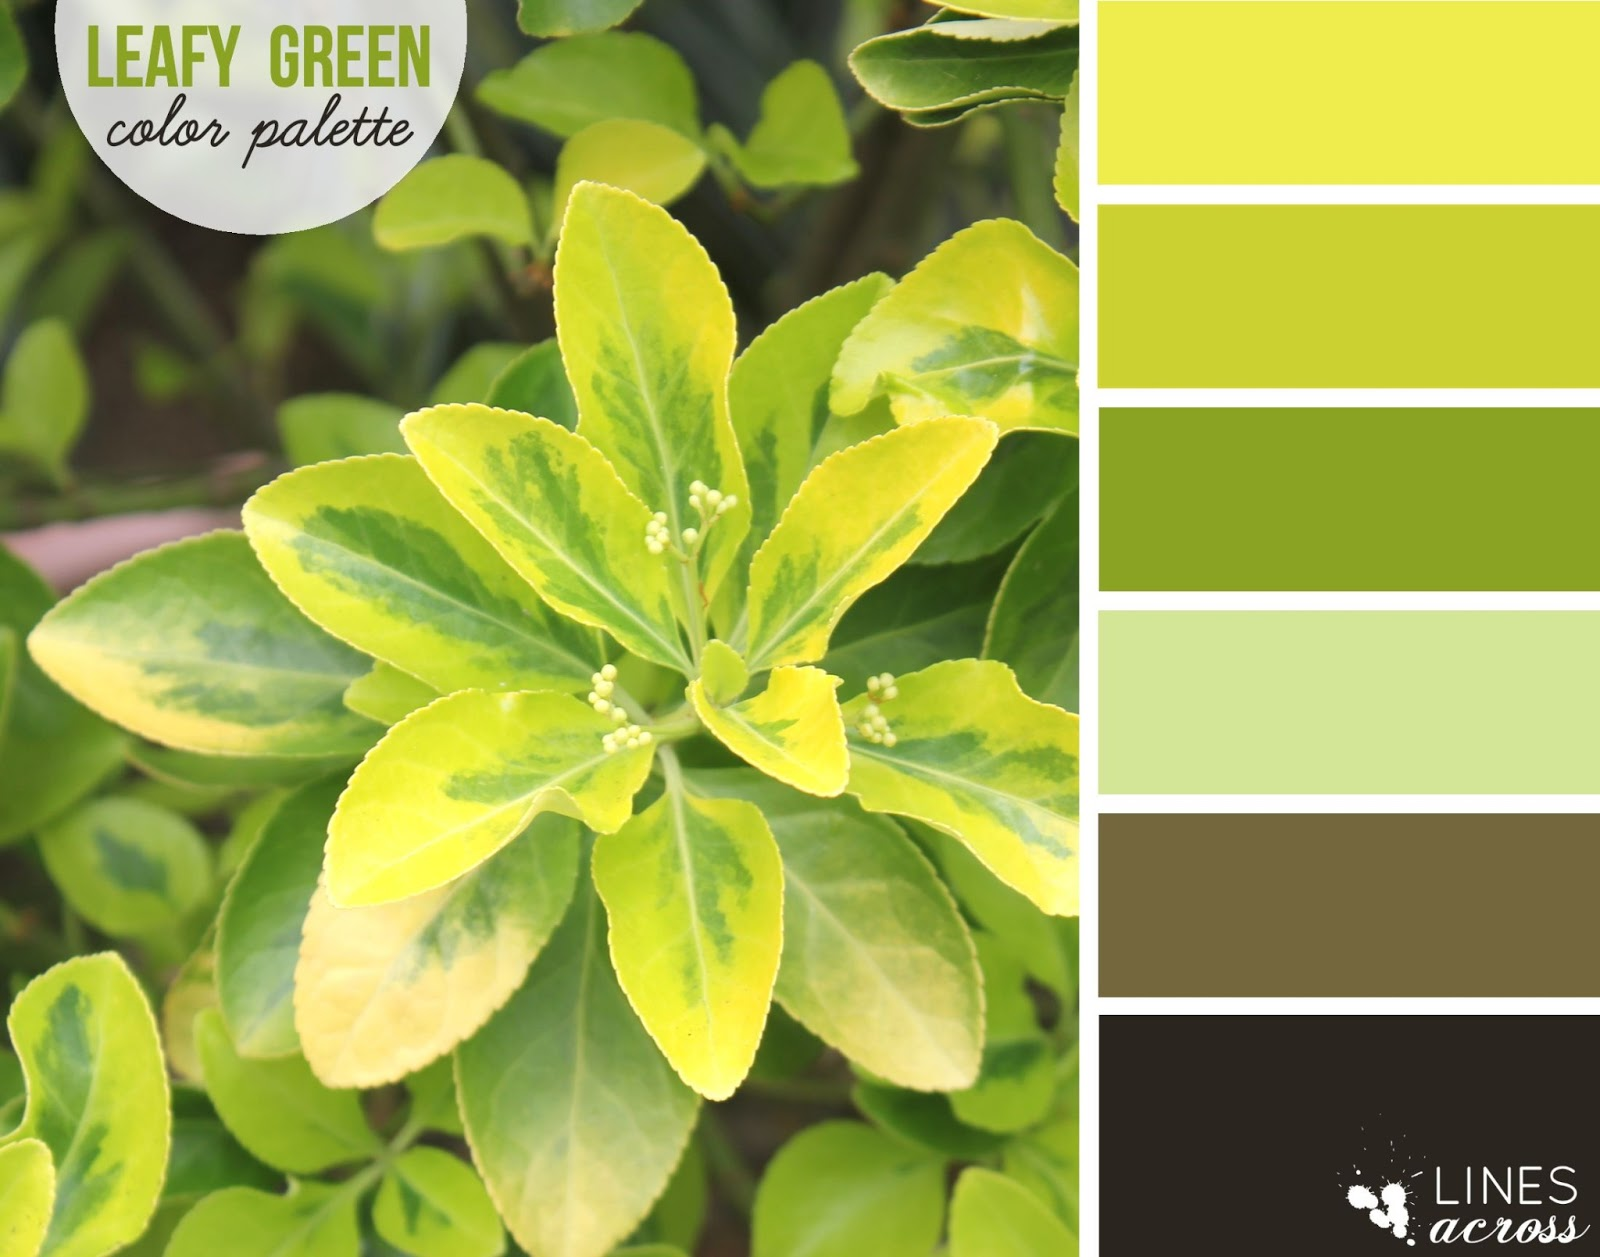 Leafy Green Color Palette - Lines Across